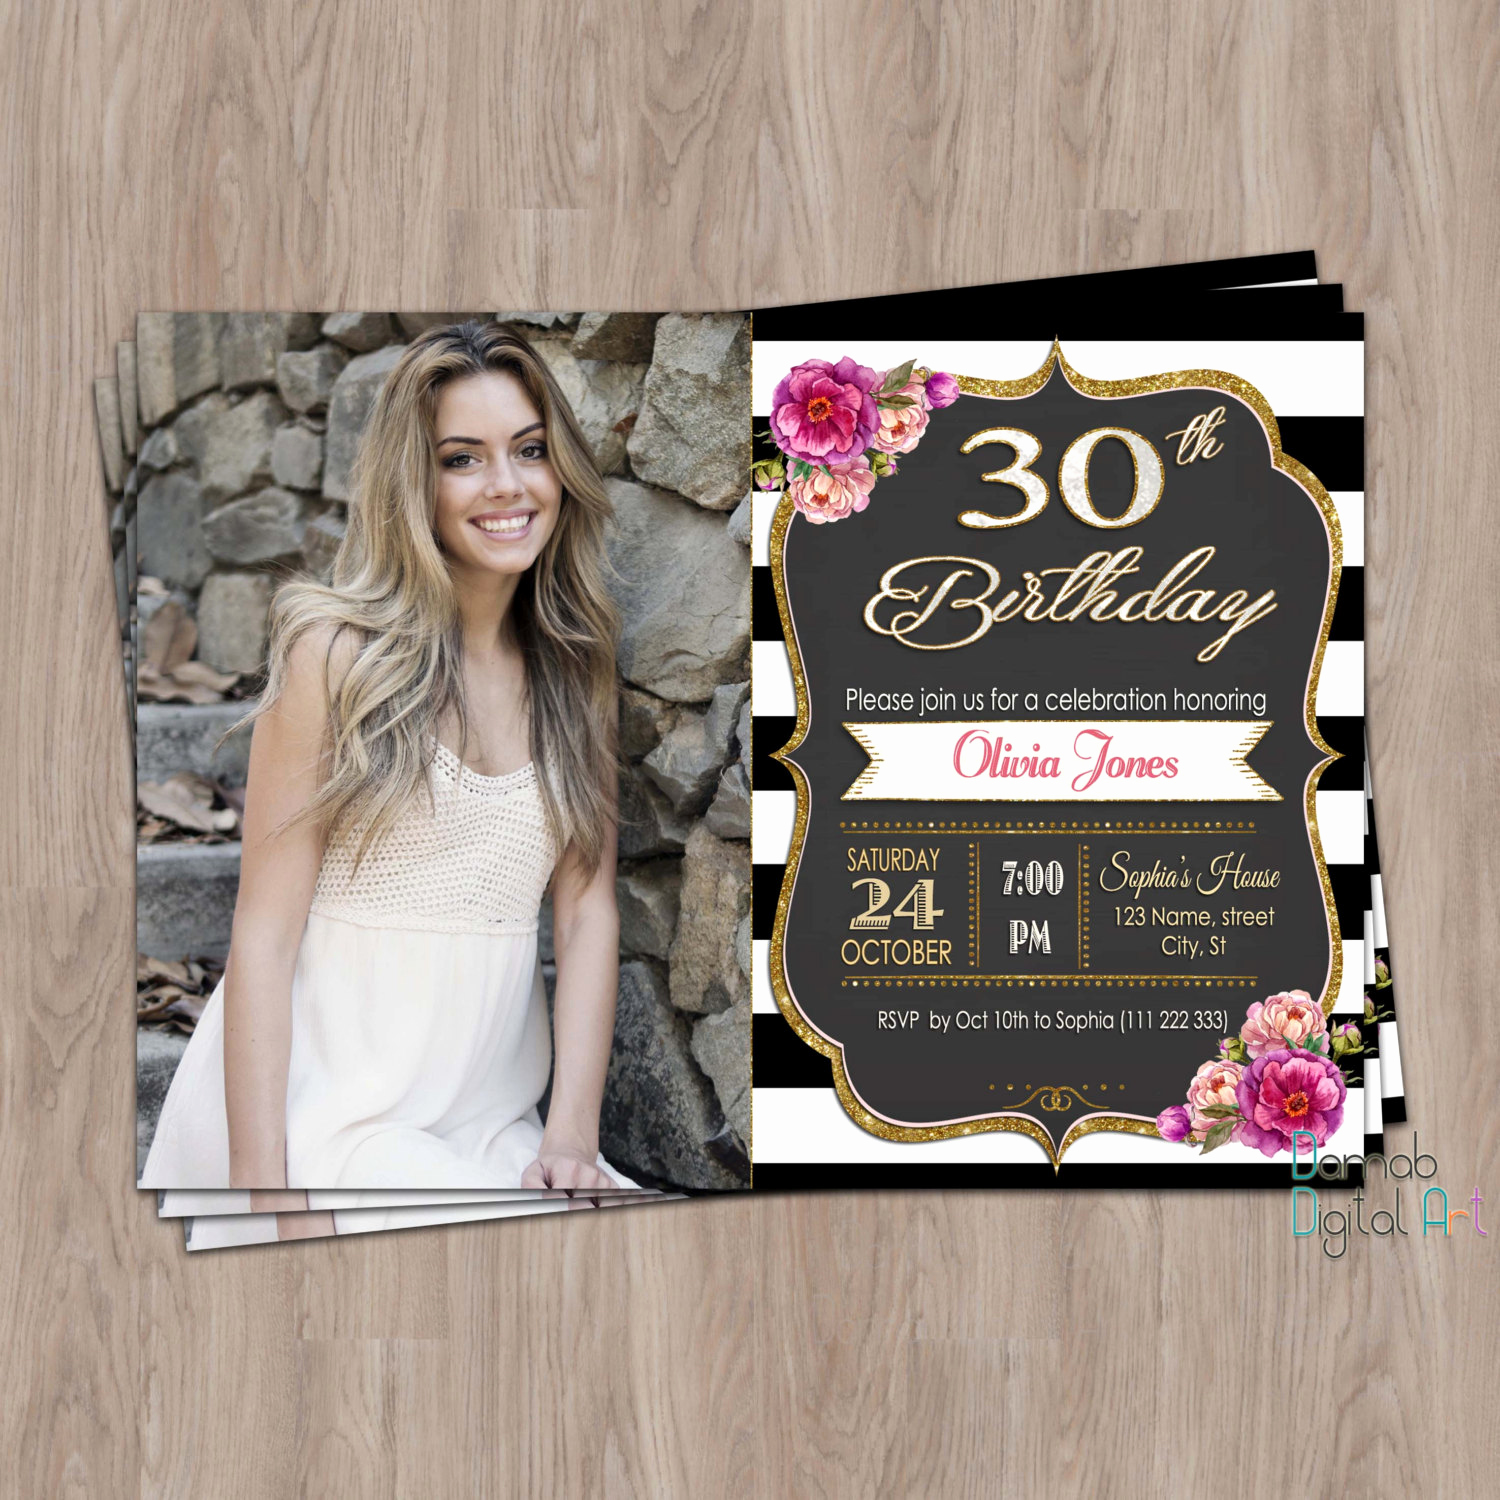 30th Birthday Invitation Ideas Luxury 30th Birthday Invitation 30th Birthday Invitation for Women